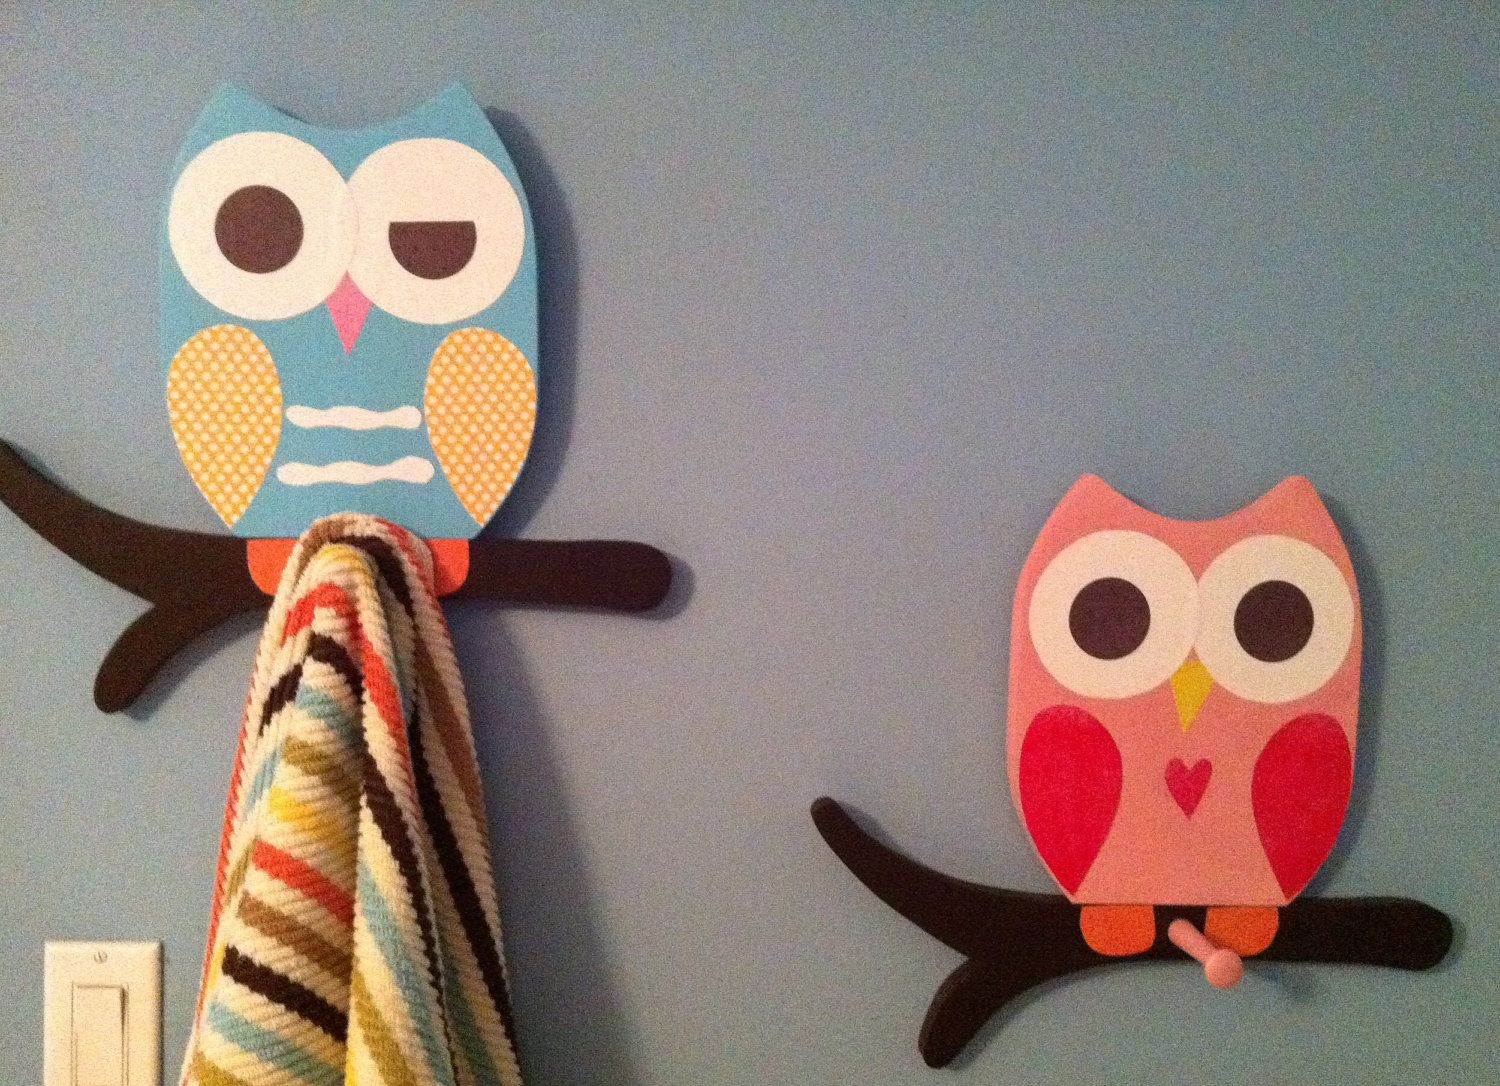 Owl Towel Racks Matches Saturday Knight Owl Bathroom Collection Set Of Two  Towel Racks. $62.99